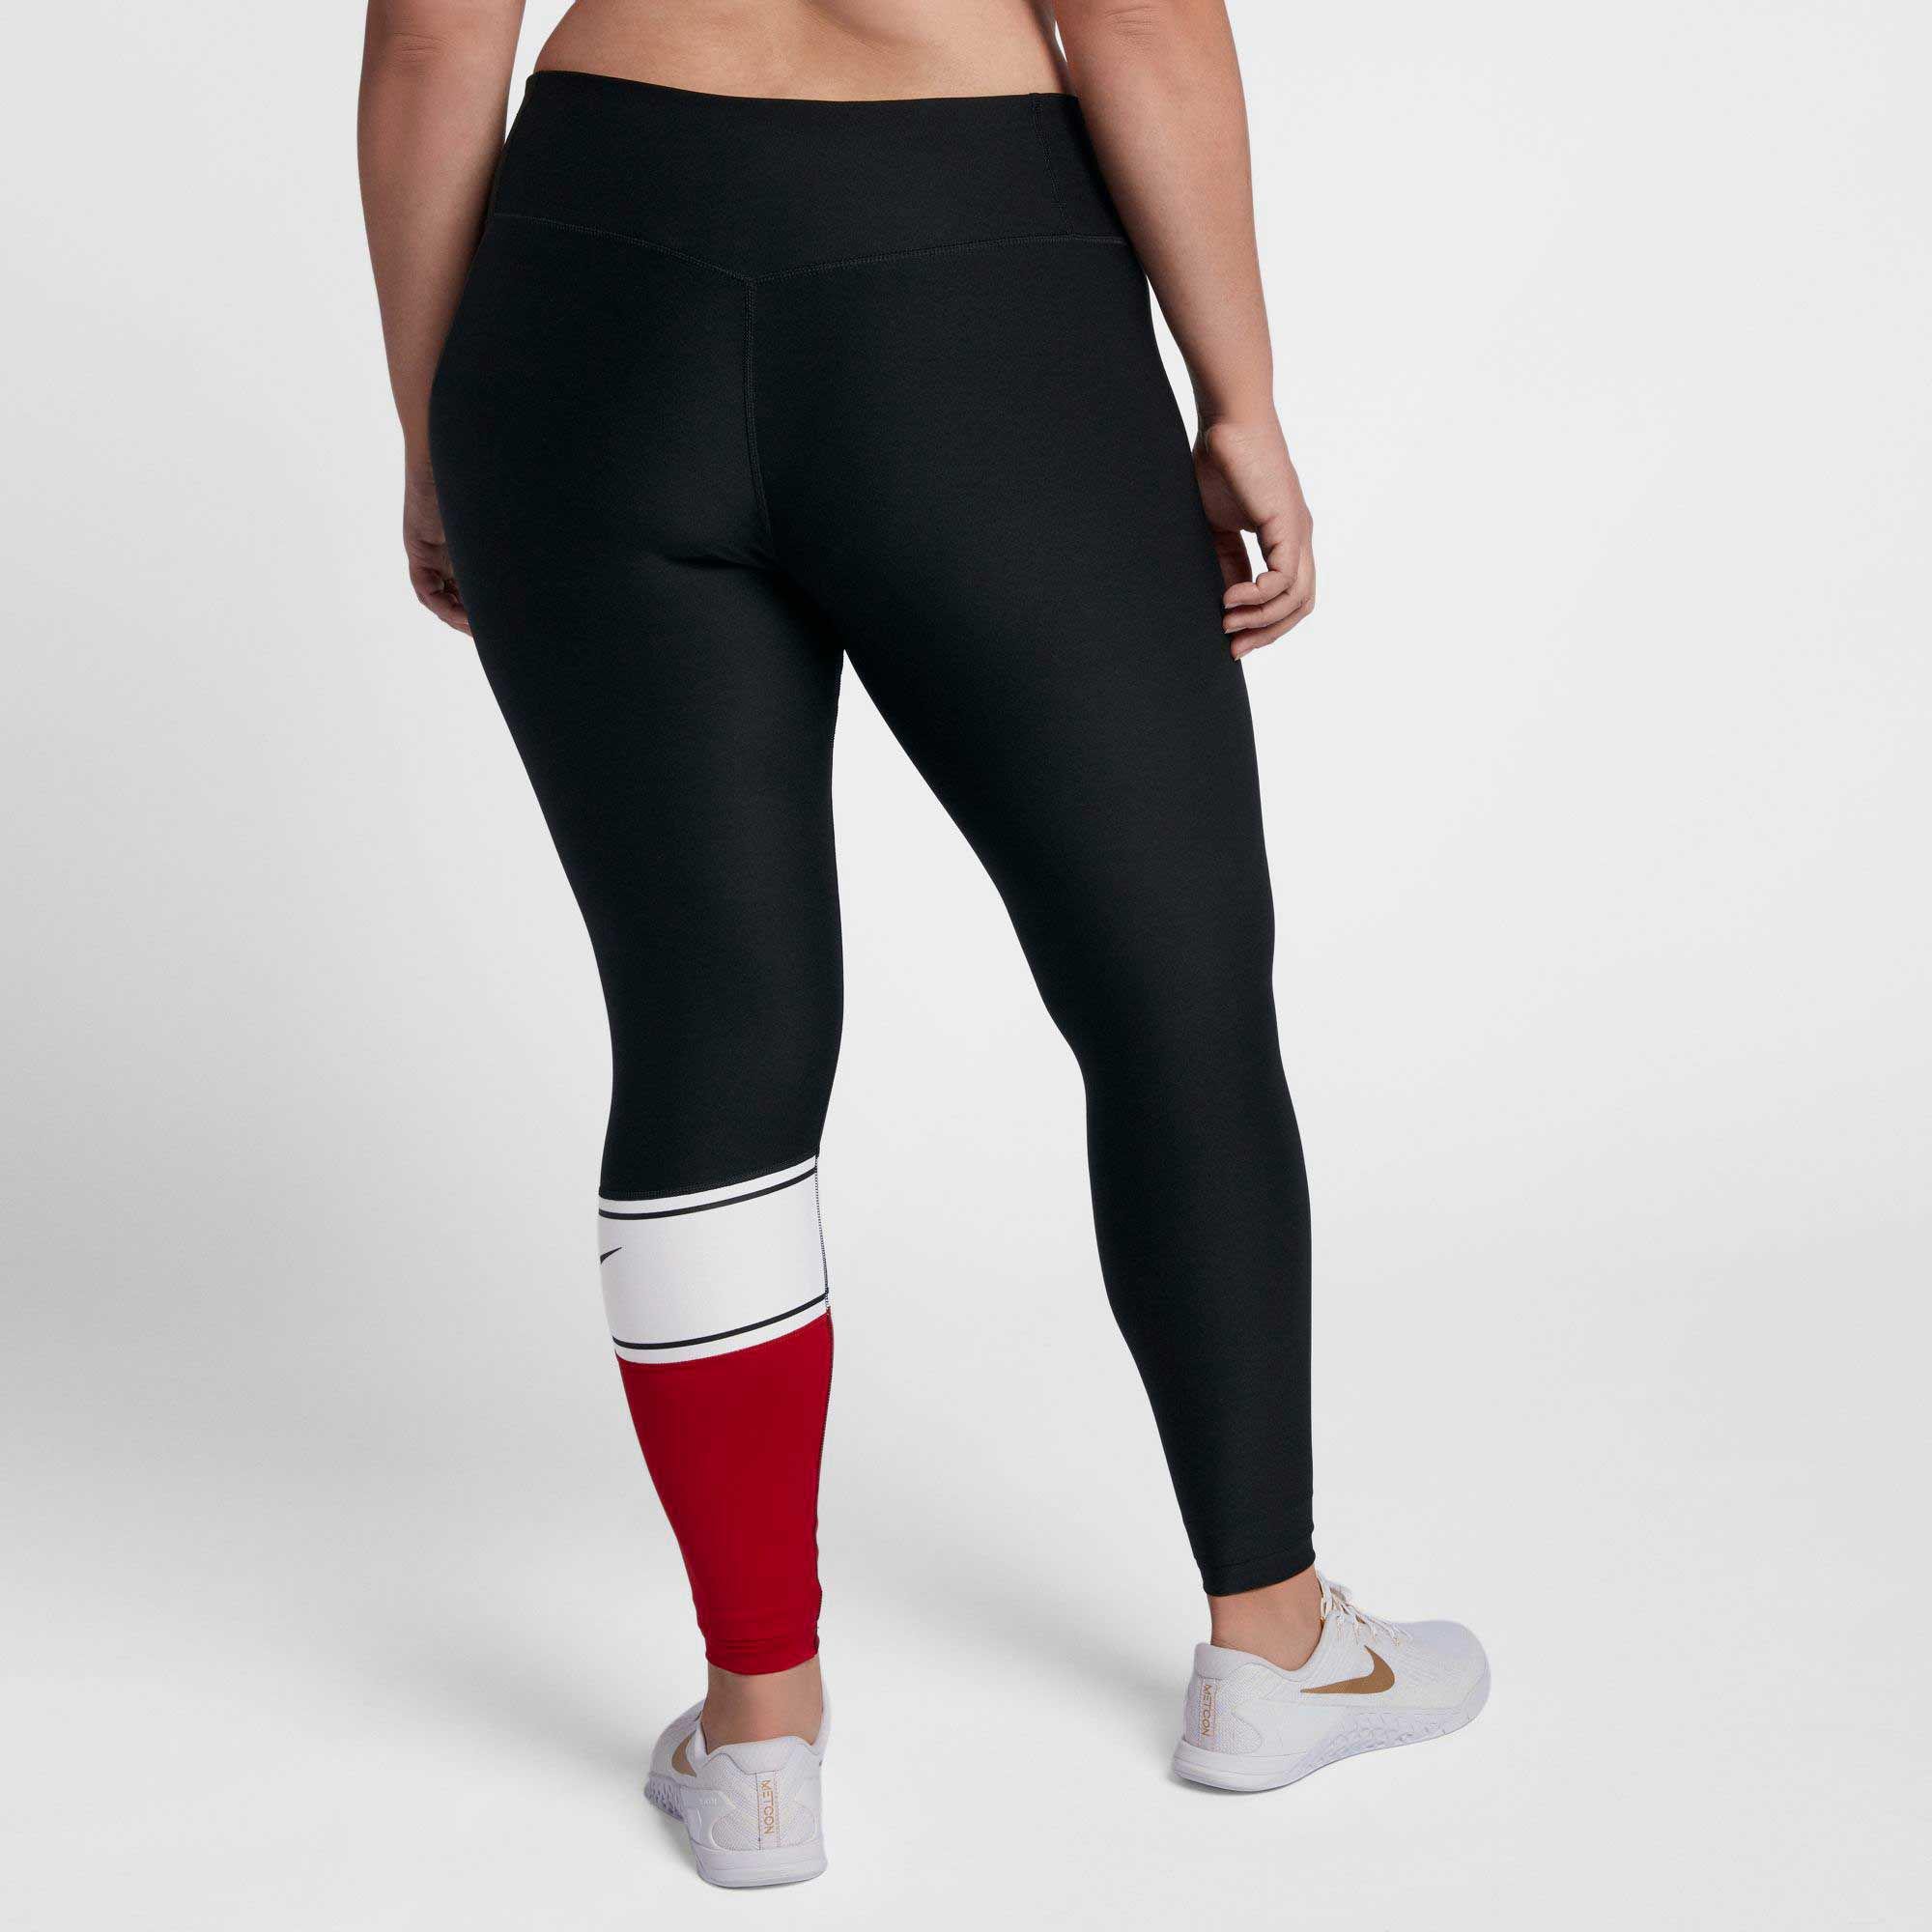 b2a1de61dc7 Lyst - Nike Plus Size Power Colorblock Training Tights in Black